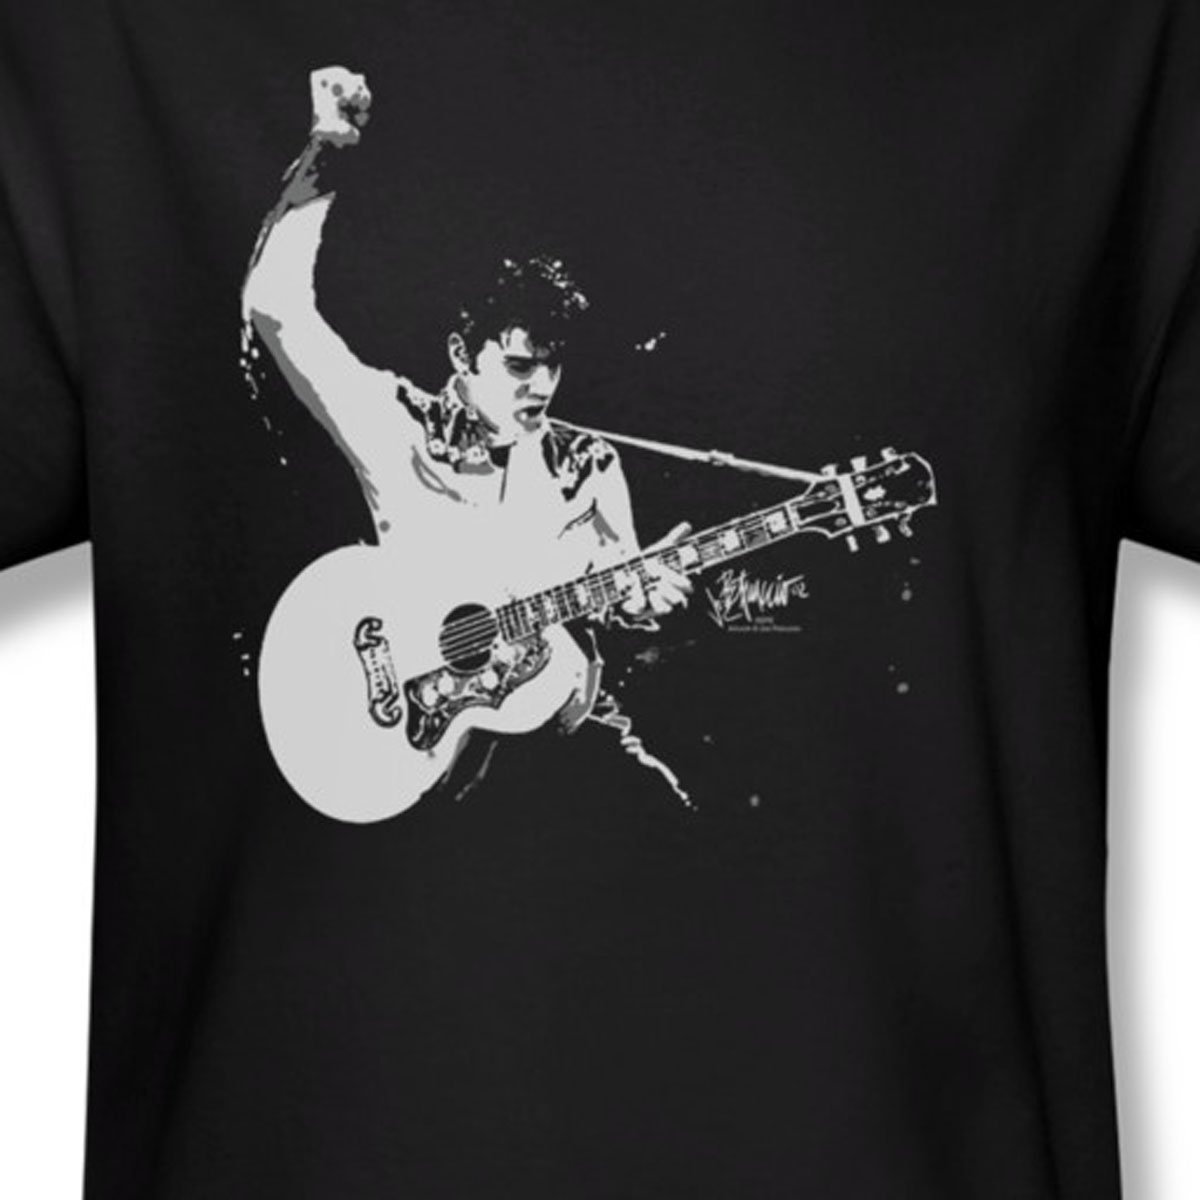 Elvis Presley Windmill Black and White T-Shirt